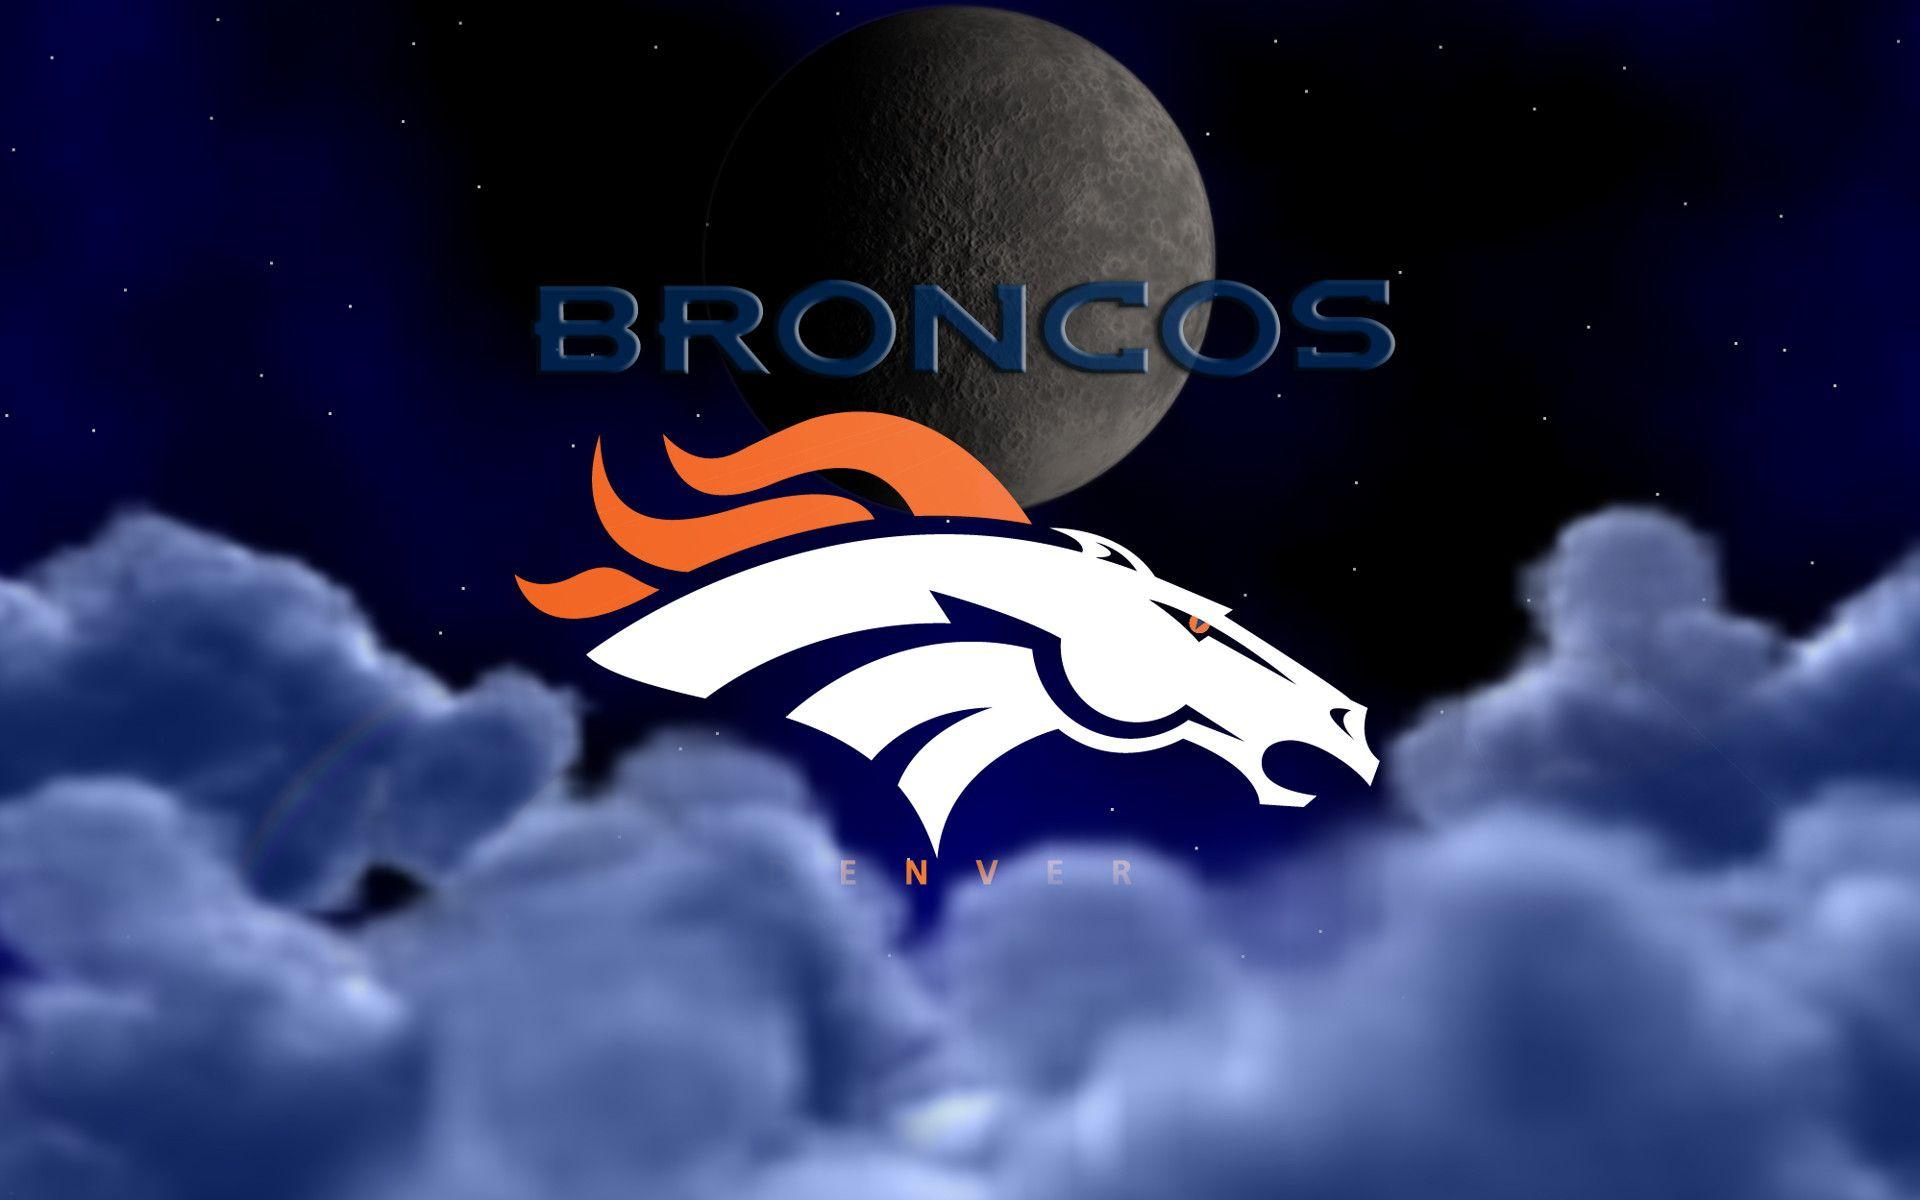 Denver Broncos wallpapers HD desktop wallpapers